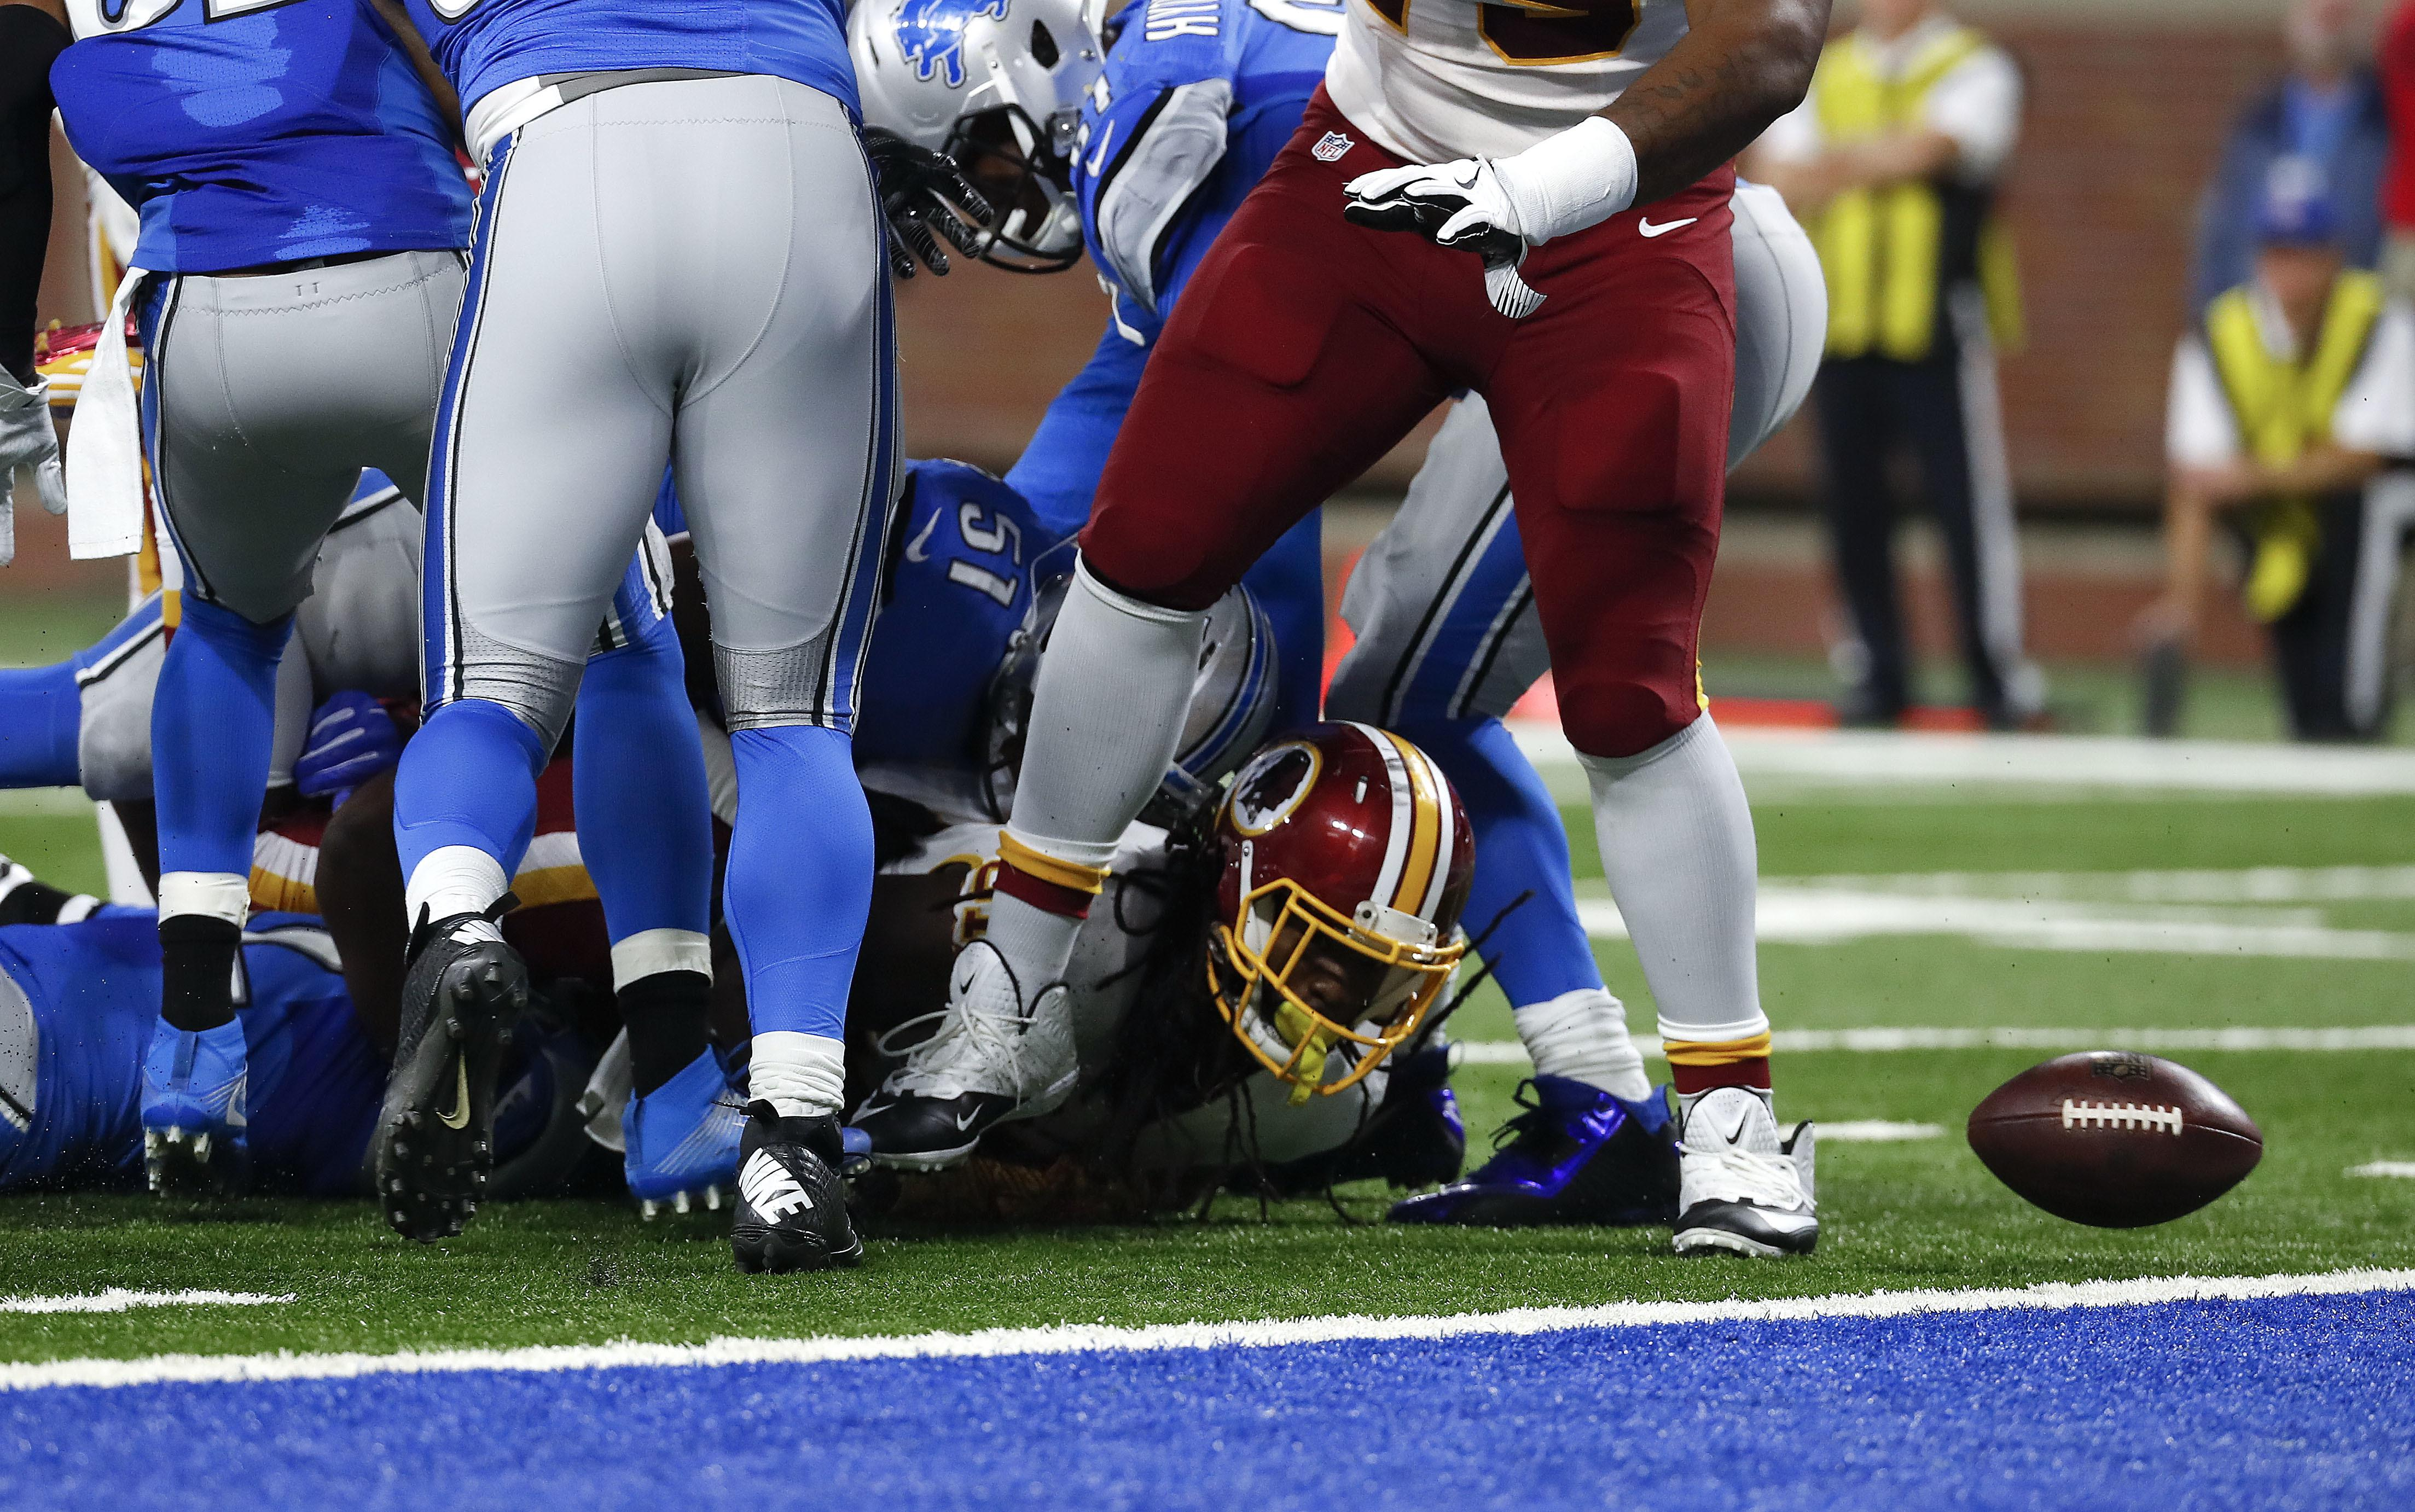 Redskins_football_to_many_mistakes